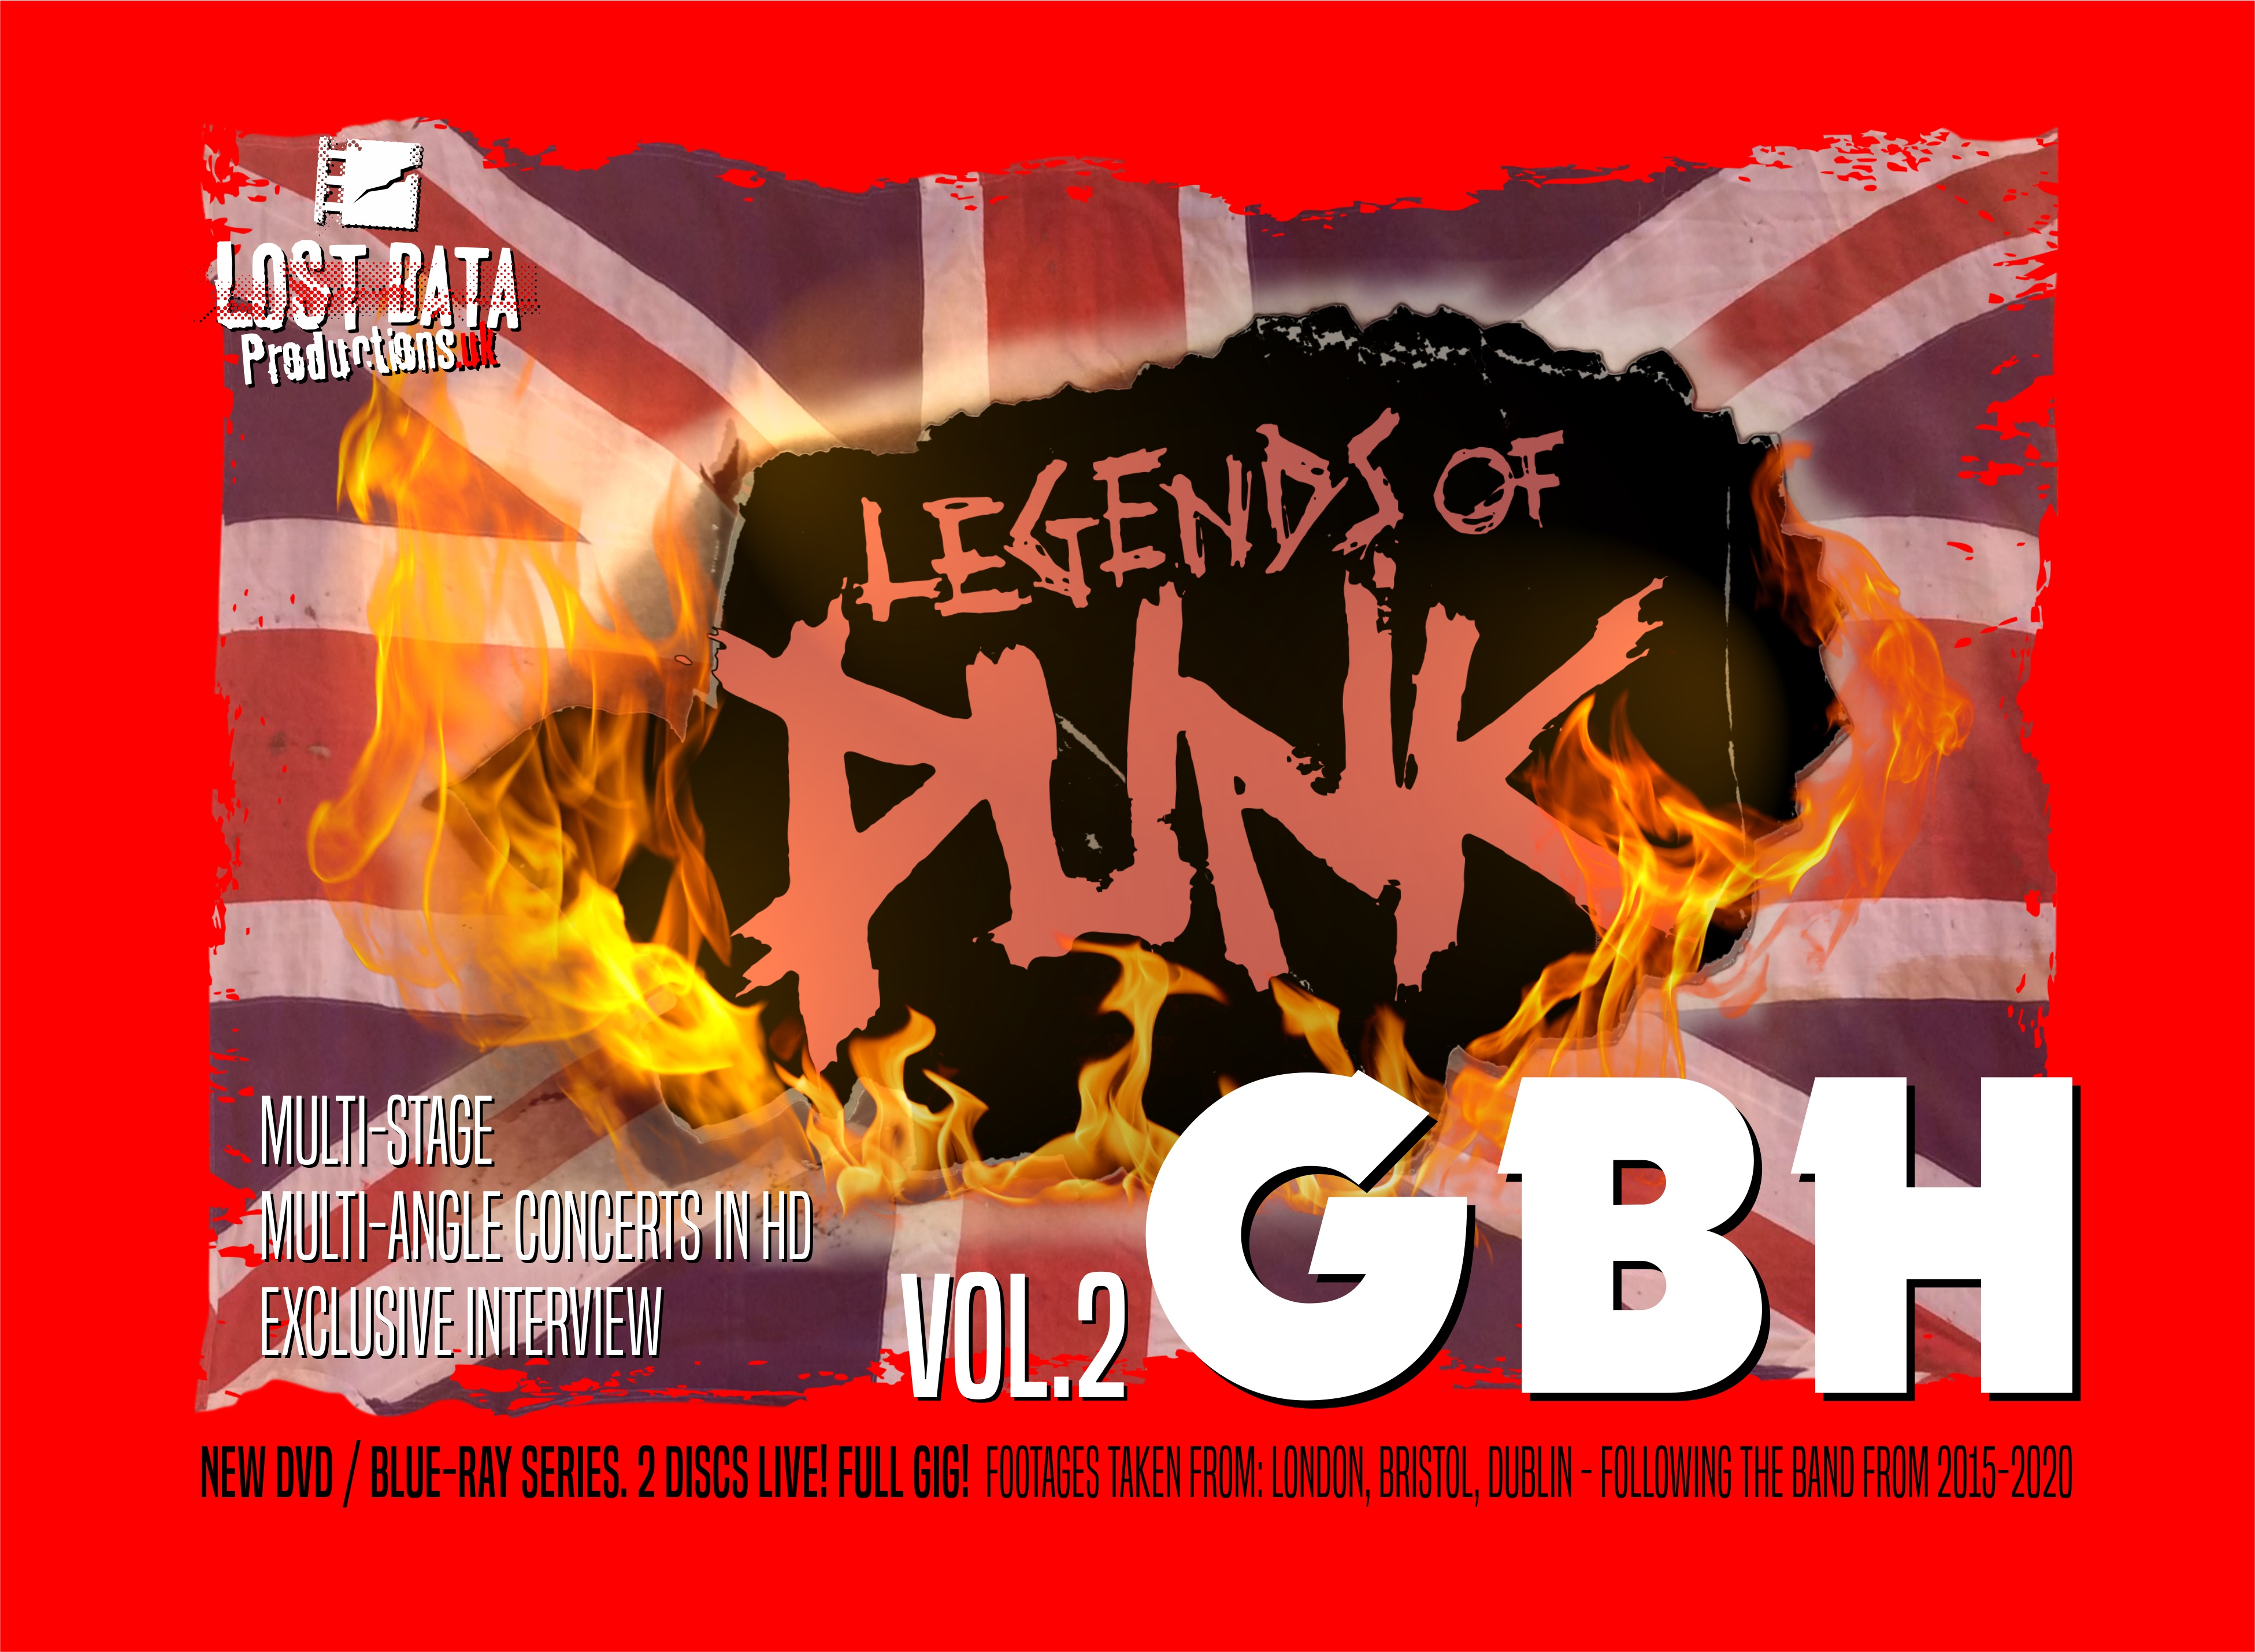 Legends of Punk Vol. 2 : G.B.H.